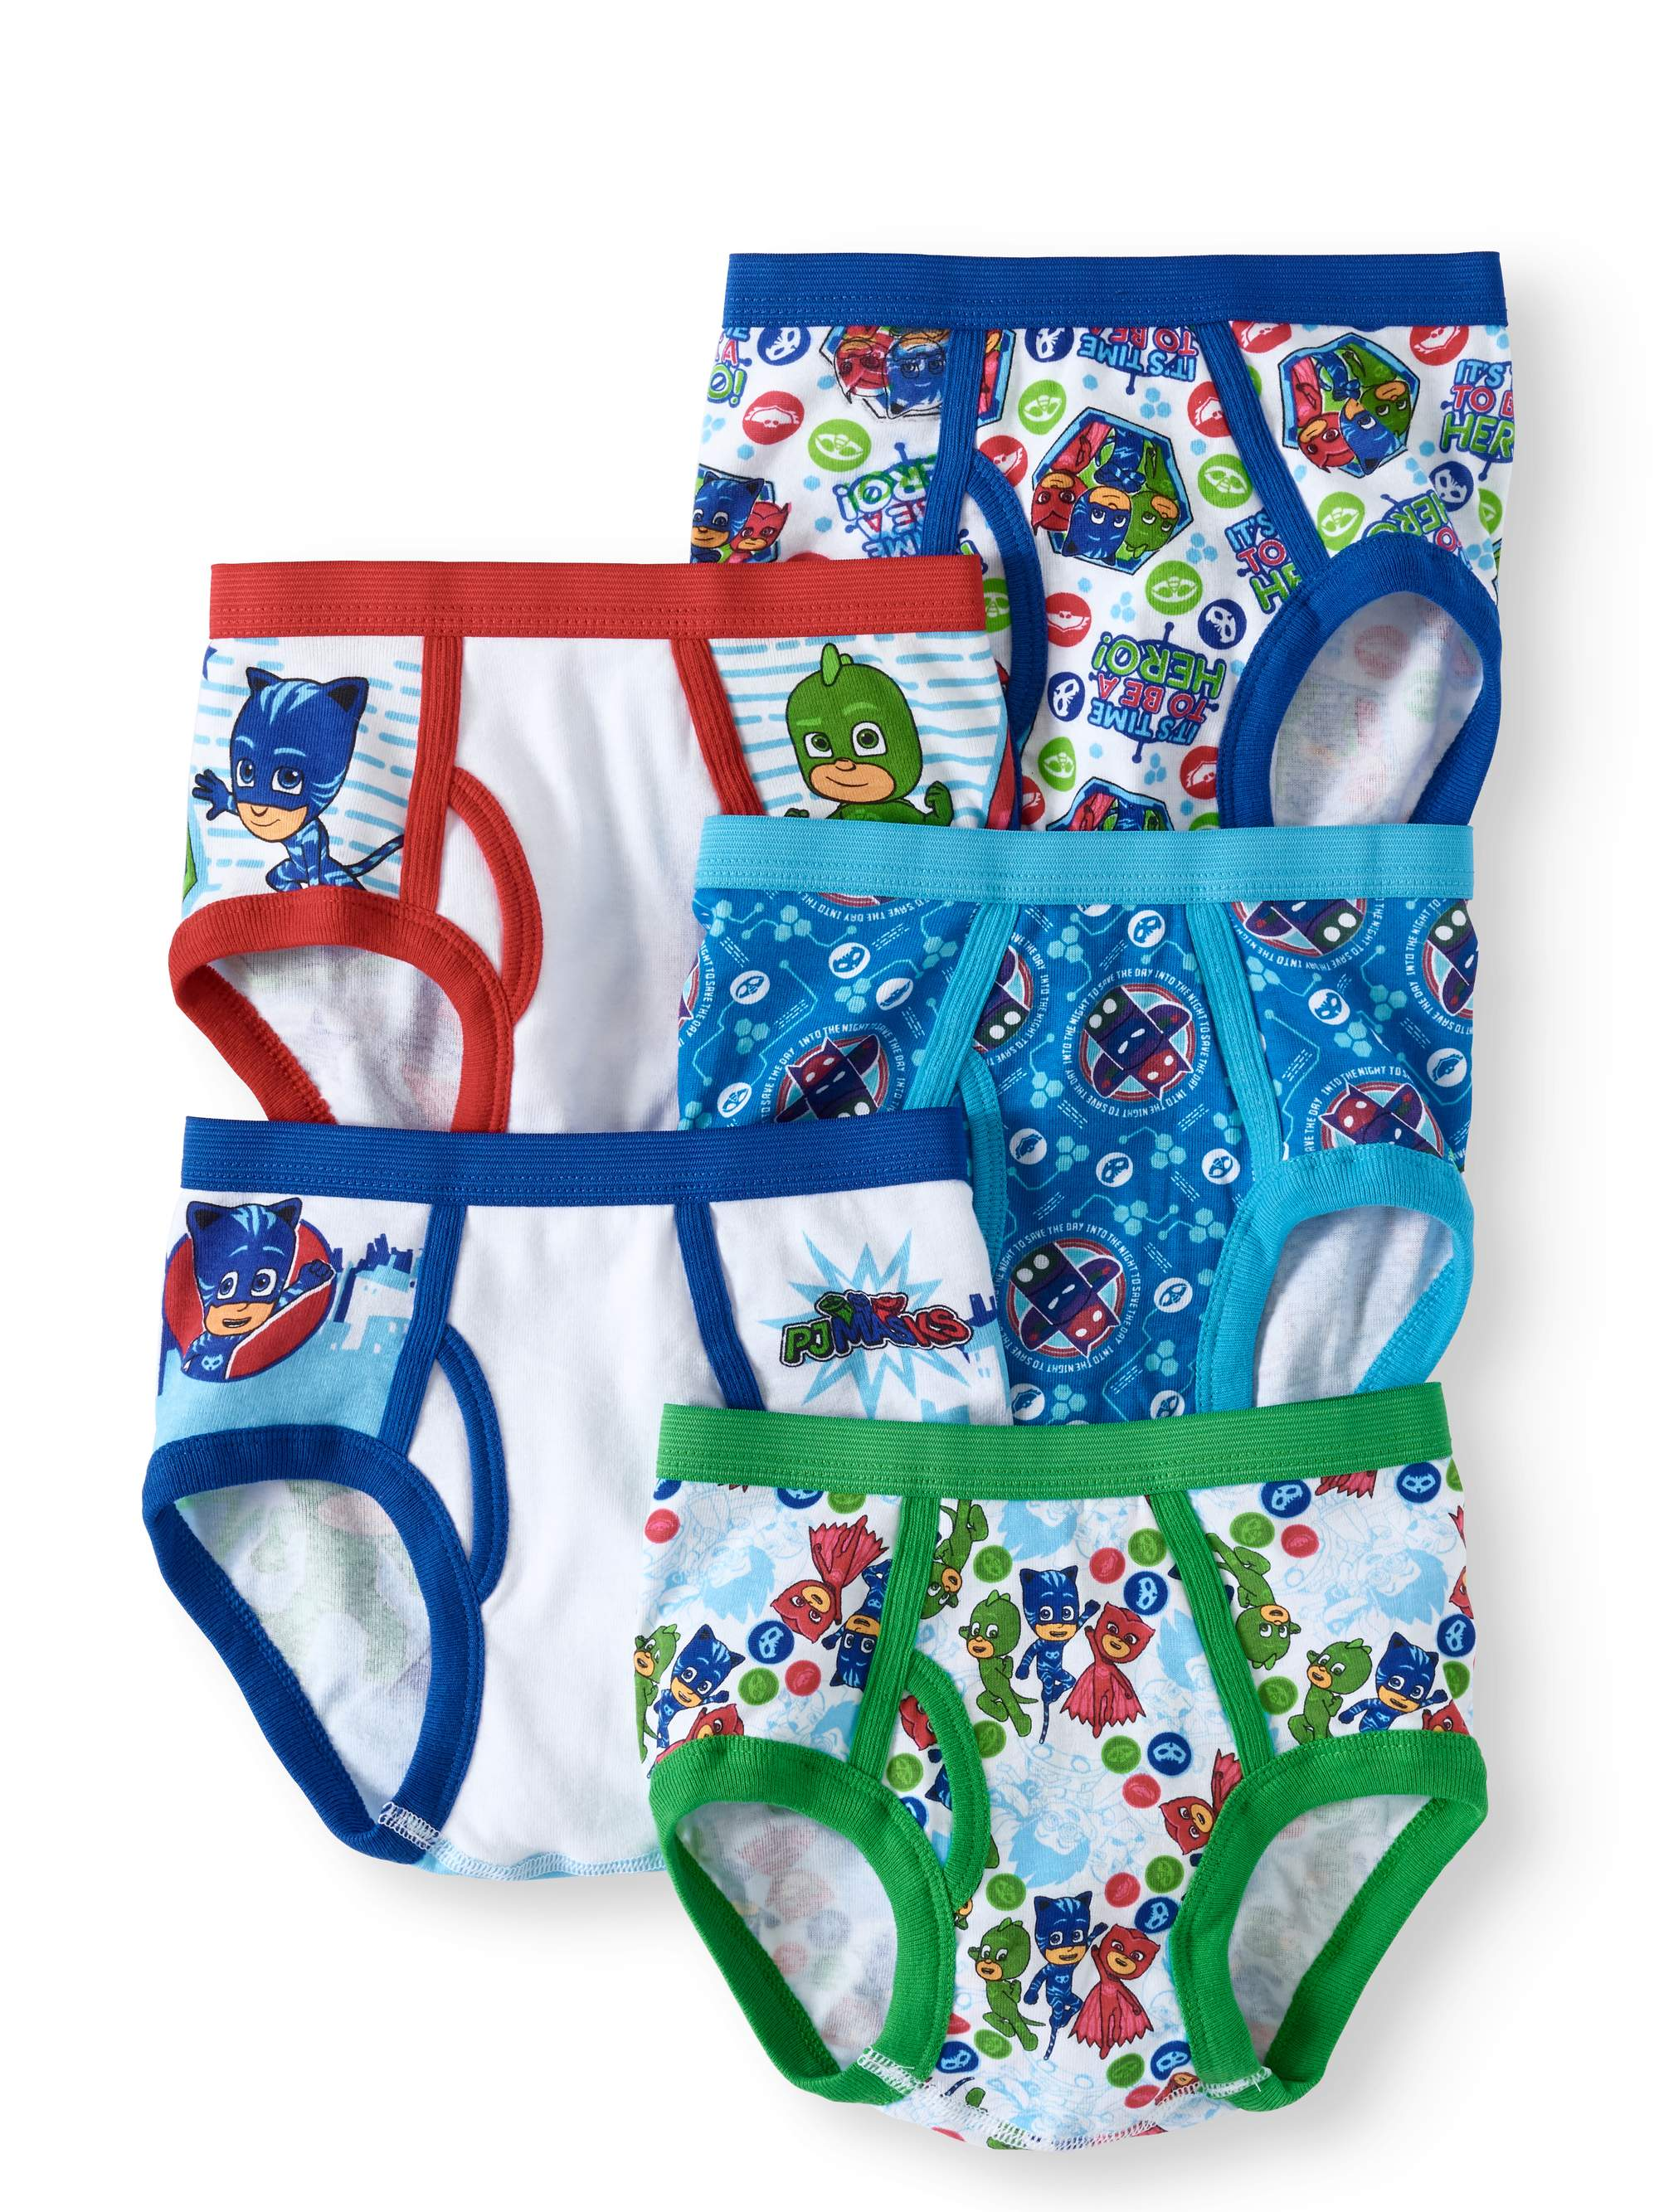 Boys' Disney PJ Masks 5pk Briefs - 6